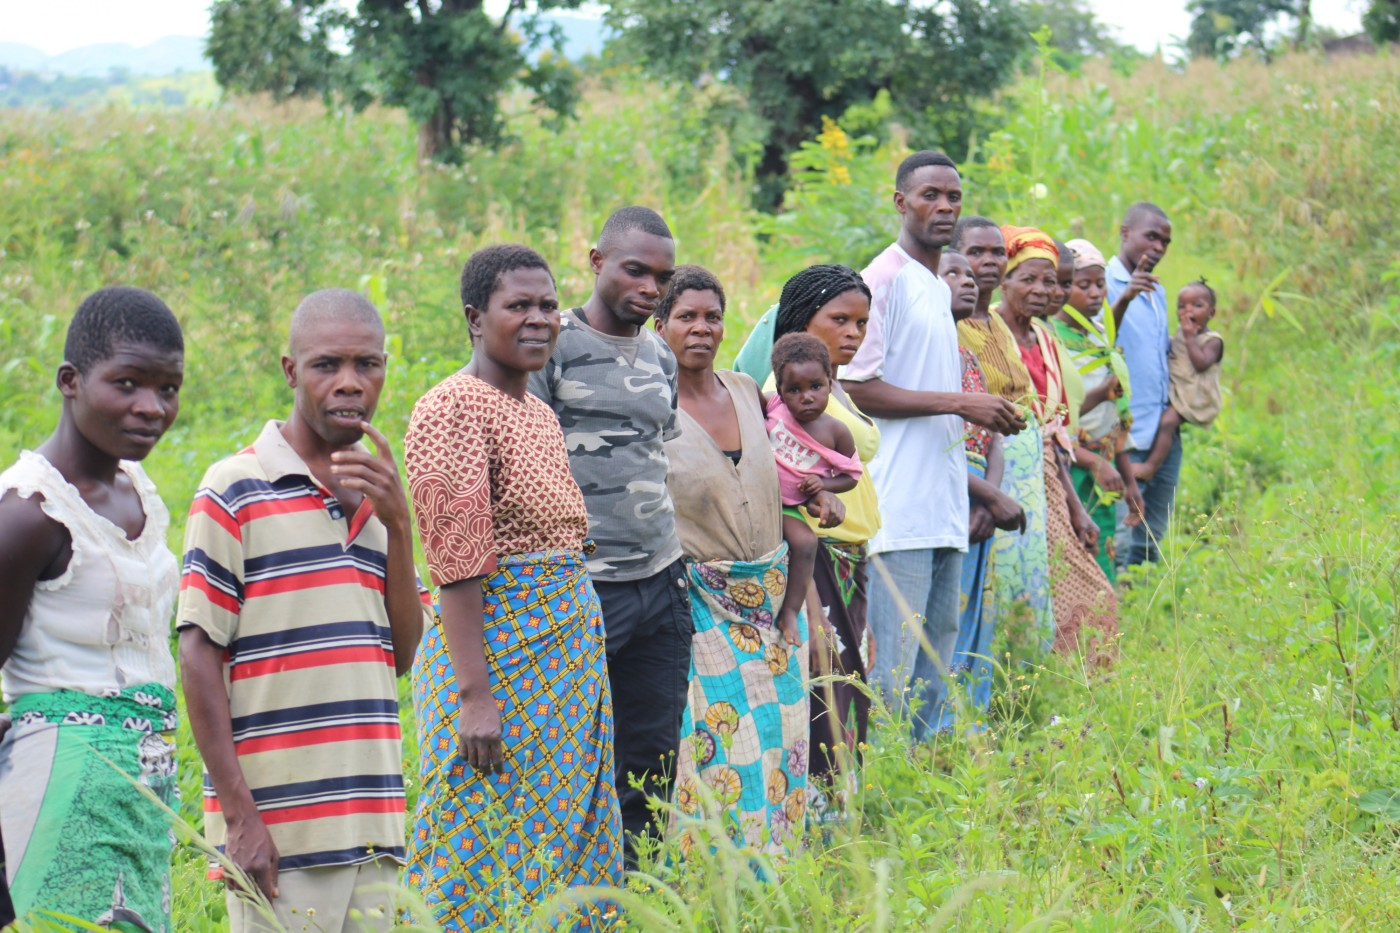 Village members create a community woodlot of bamboo. Credit: Theodora Kachingwa